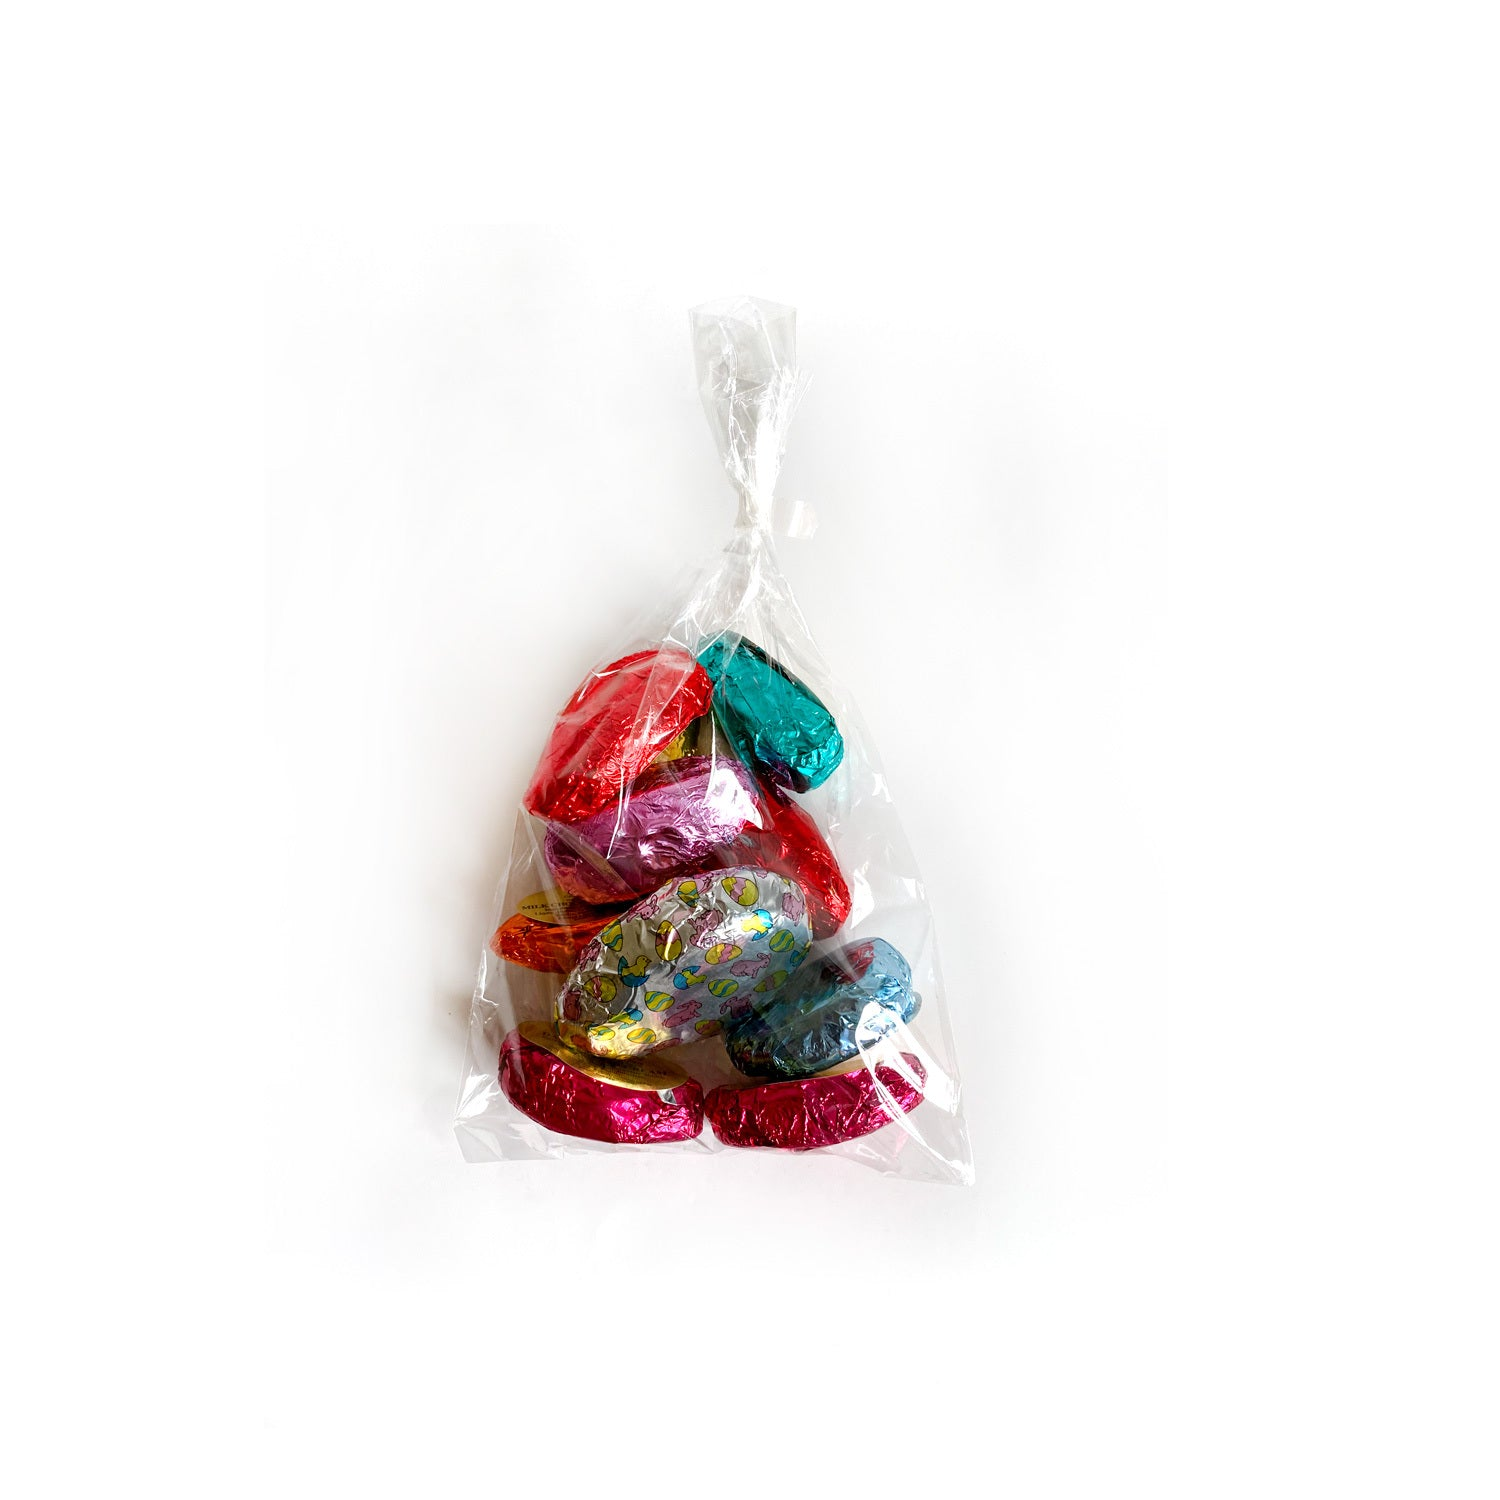 10 chocolate eggs with assorted fillings in a clear bag.